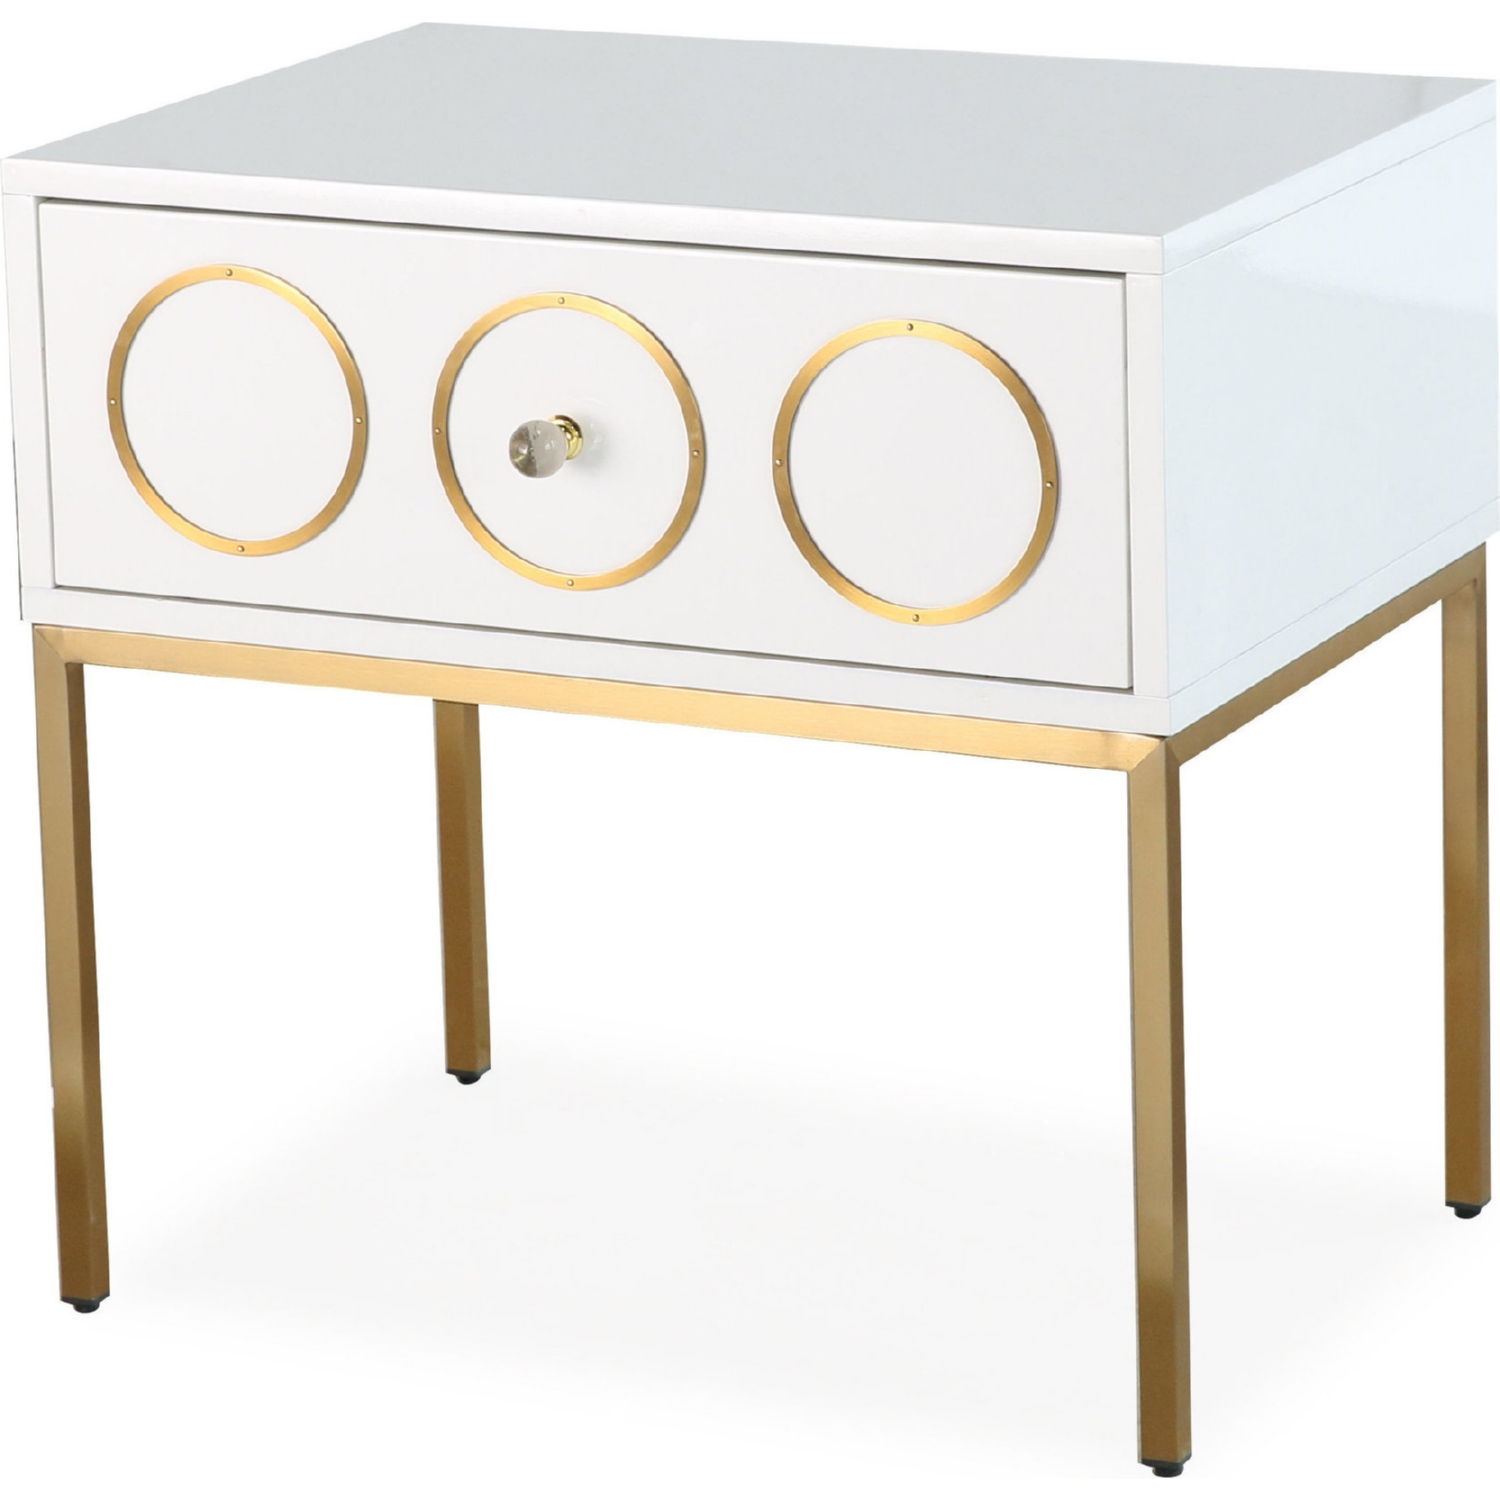 tov furniture ella side table white lacquer brushed accent gold base accents bbq prep extra wide console lamp lamps with usb ports and marble top corner living room pottery barn